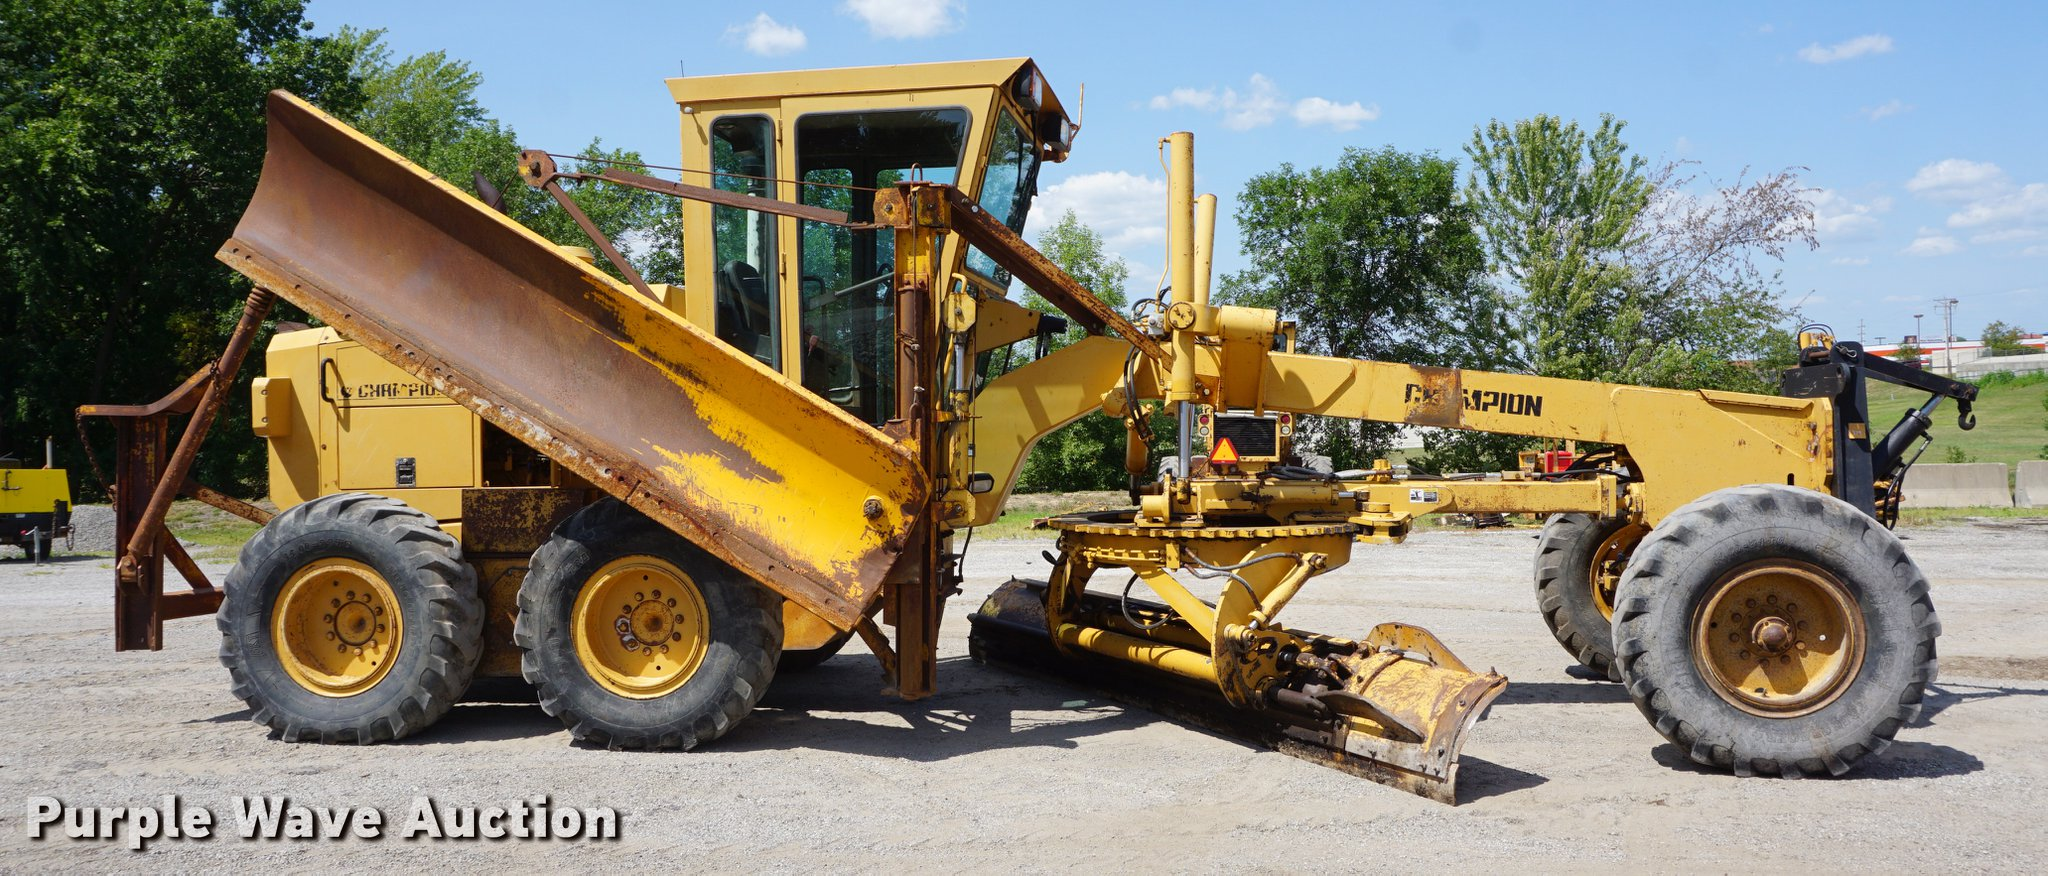 ... Champion 720A Series III motor grader Full size in new window ...